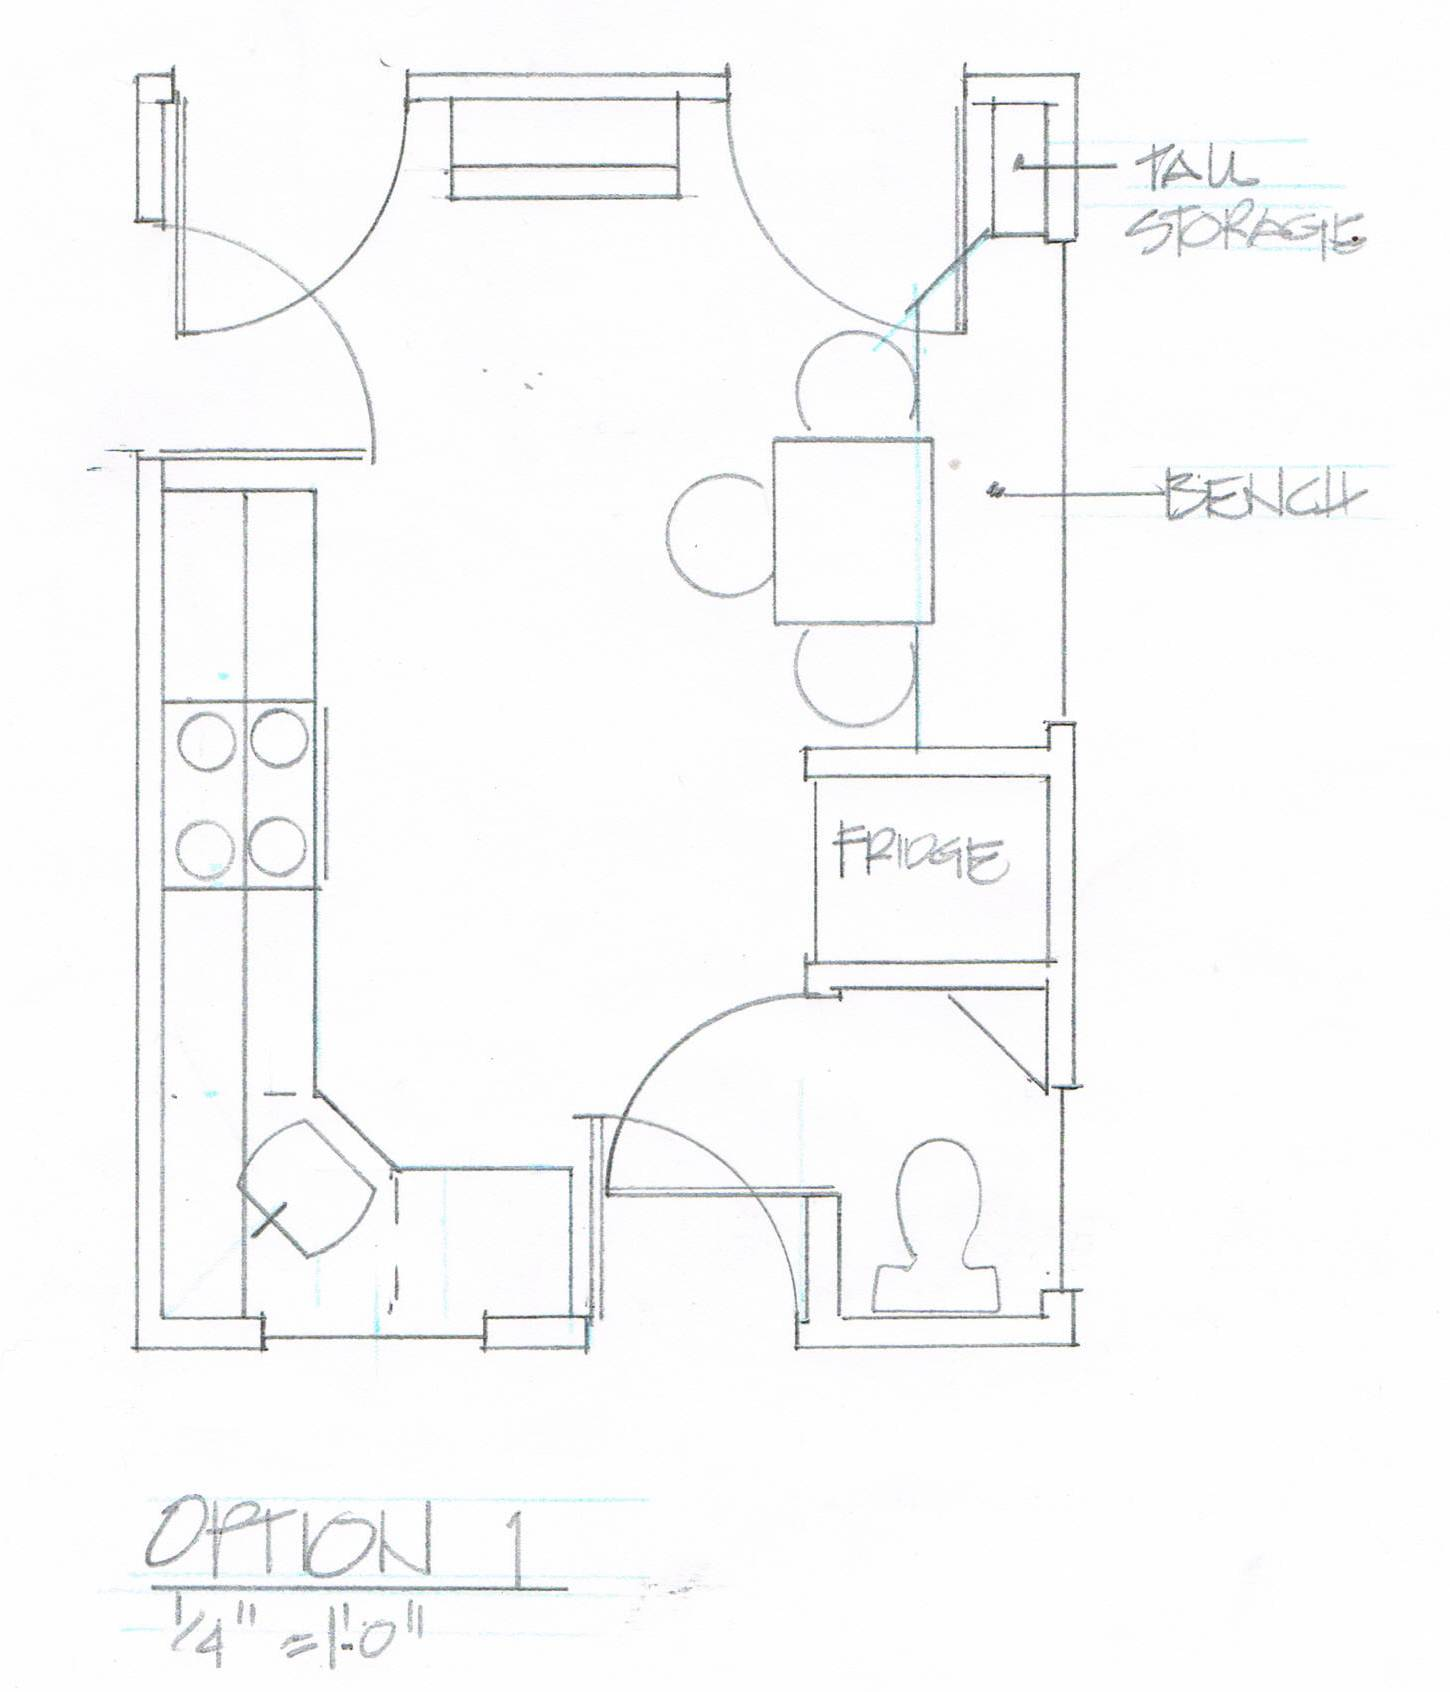 Kitchen Cabinet Drawing at GetDrawings.com | Free for ...